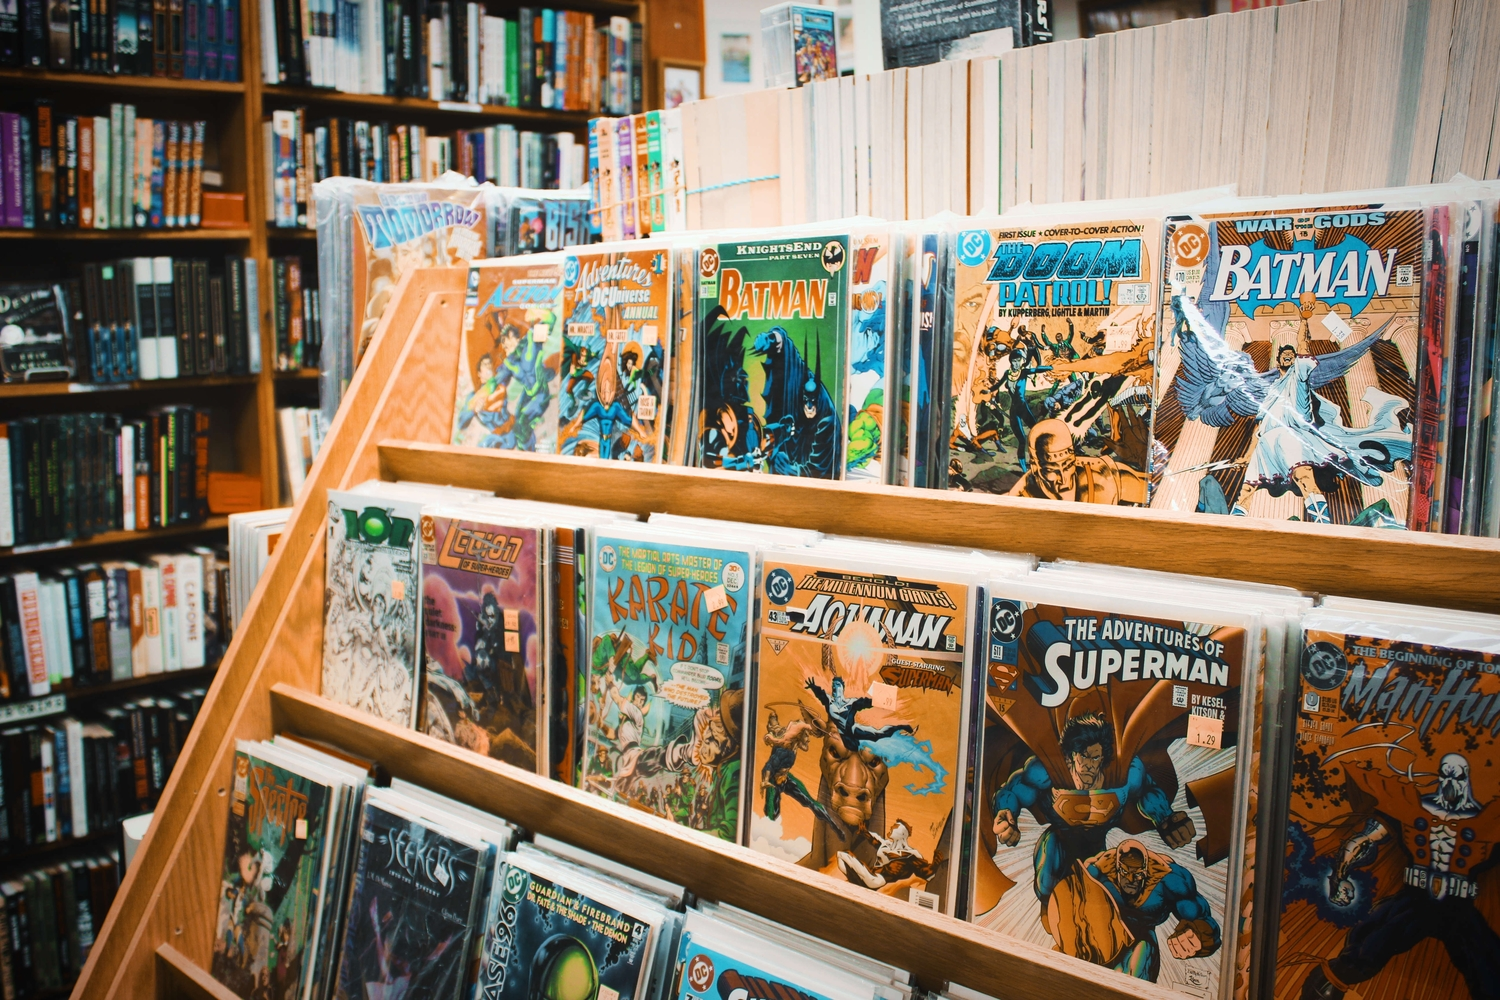 Comic books on shelf